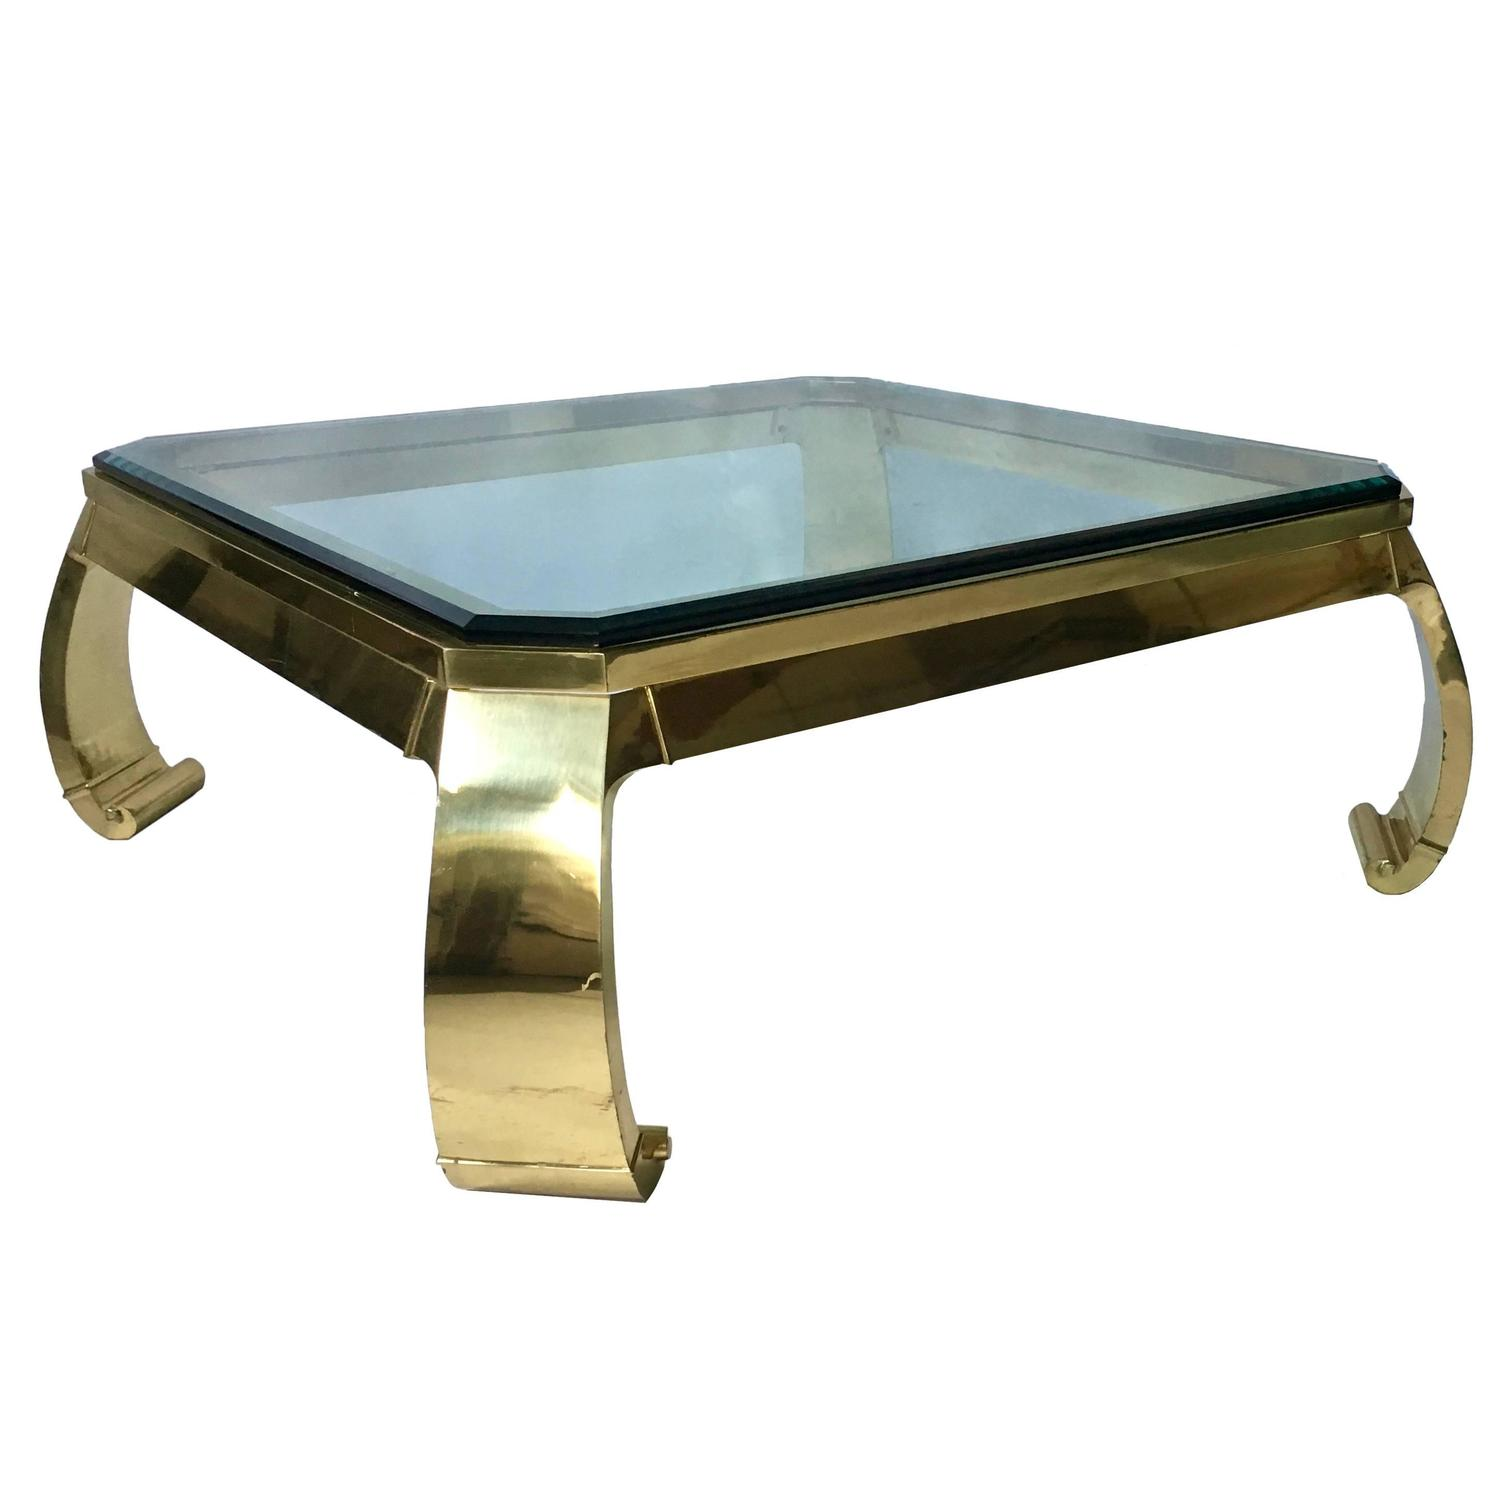 Exceptional 80s Brass and Glass Coffee Table Attributed to Karl